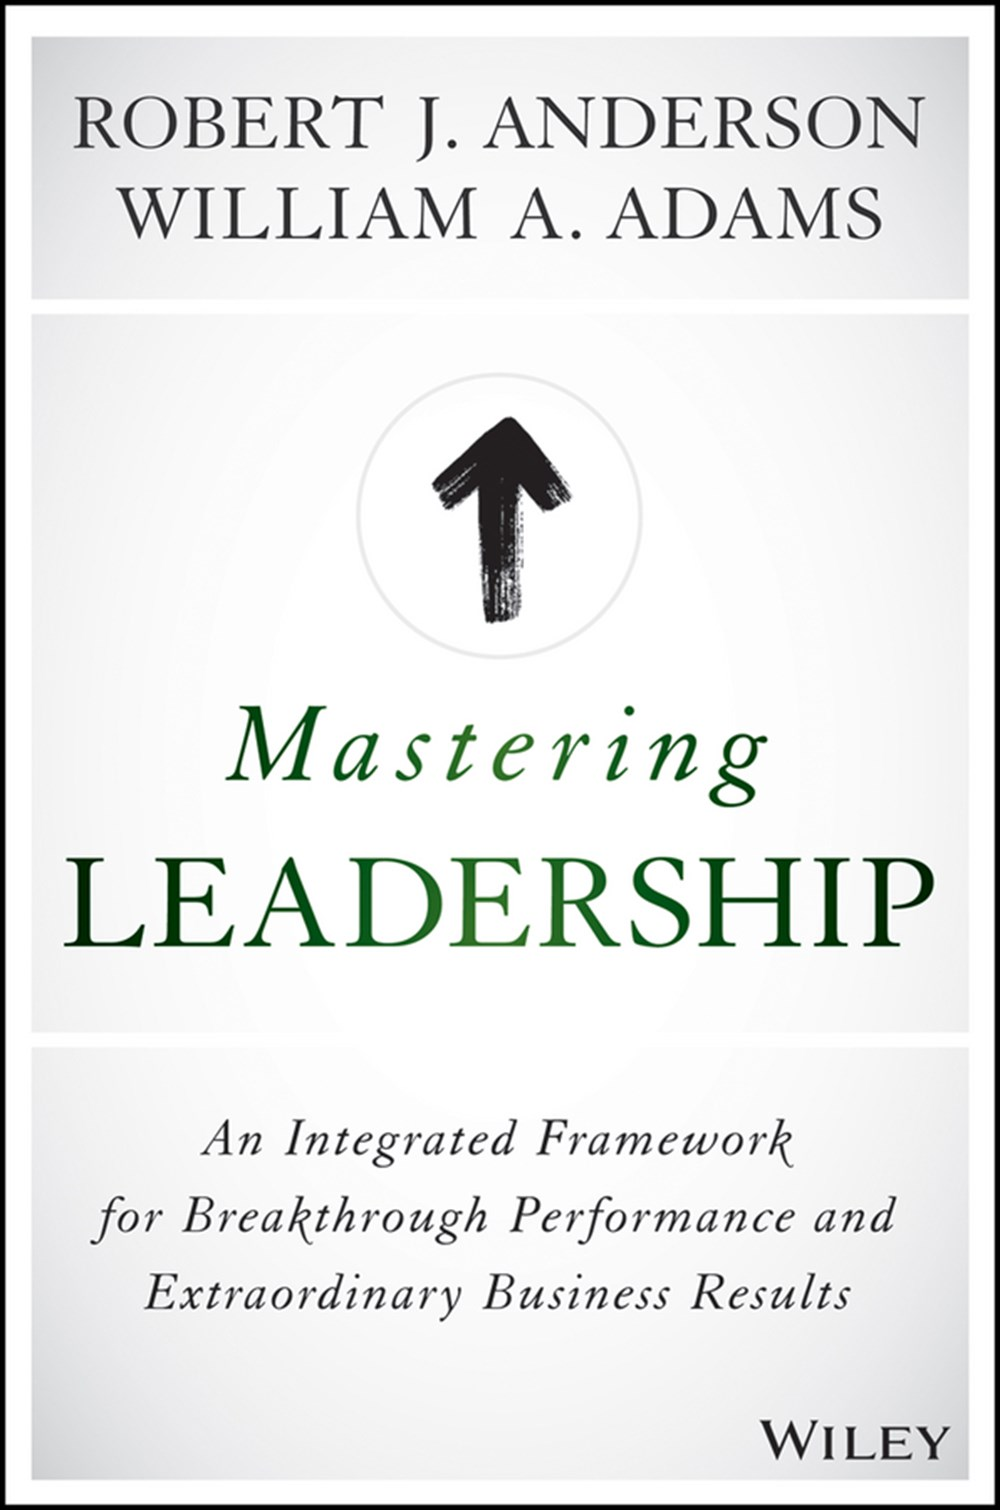 Mastering Leadership An Integrated Framework for Breakthrough Performance and Extraordinary Business